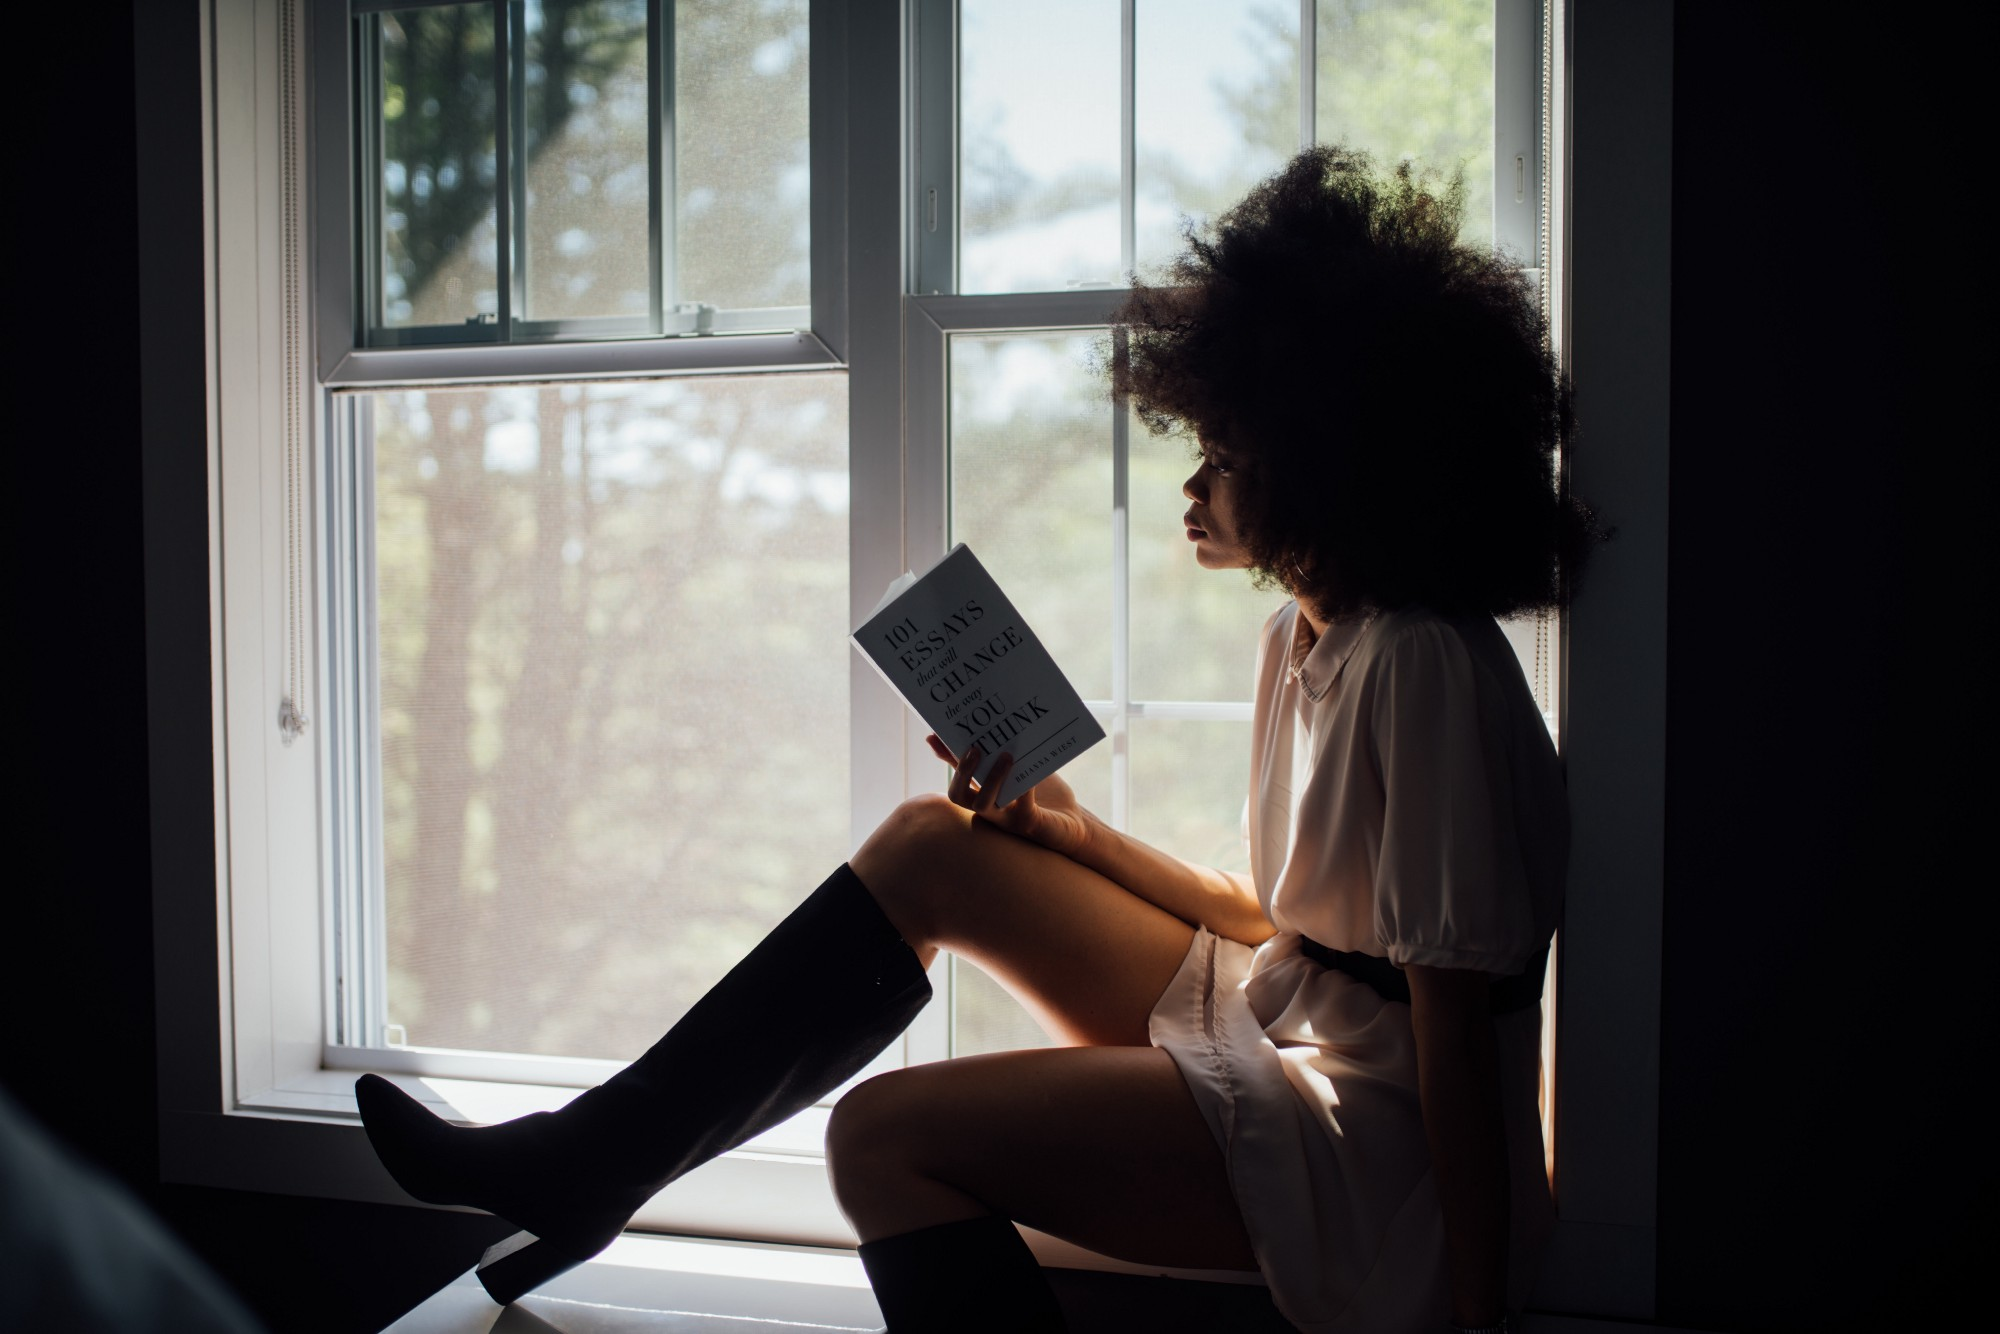 """A Black Woman sitting in a window sill reading, """"101 Essays that will change the way you think."""""""